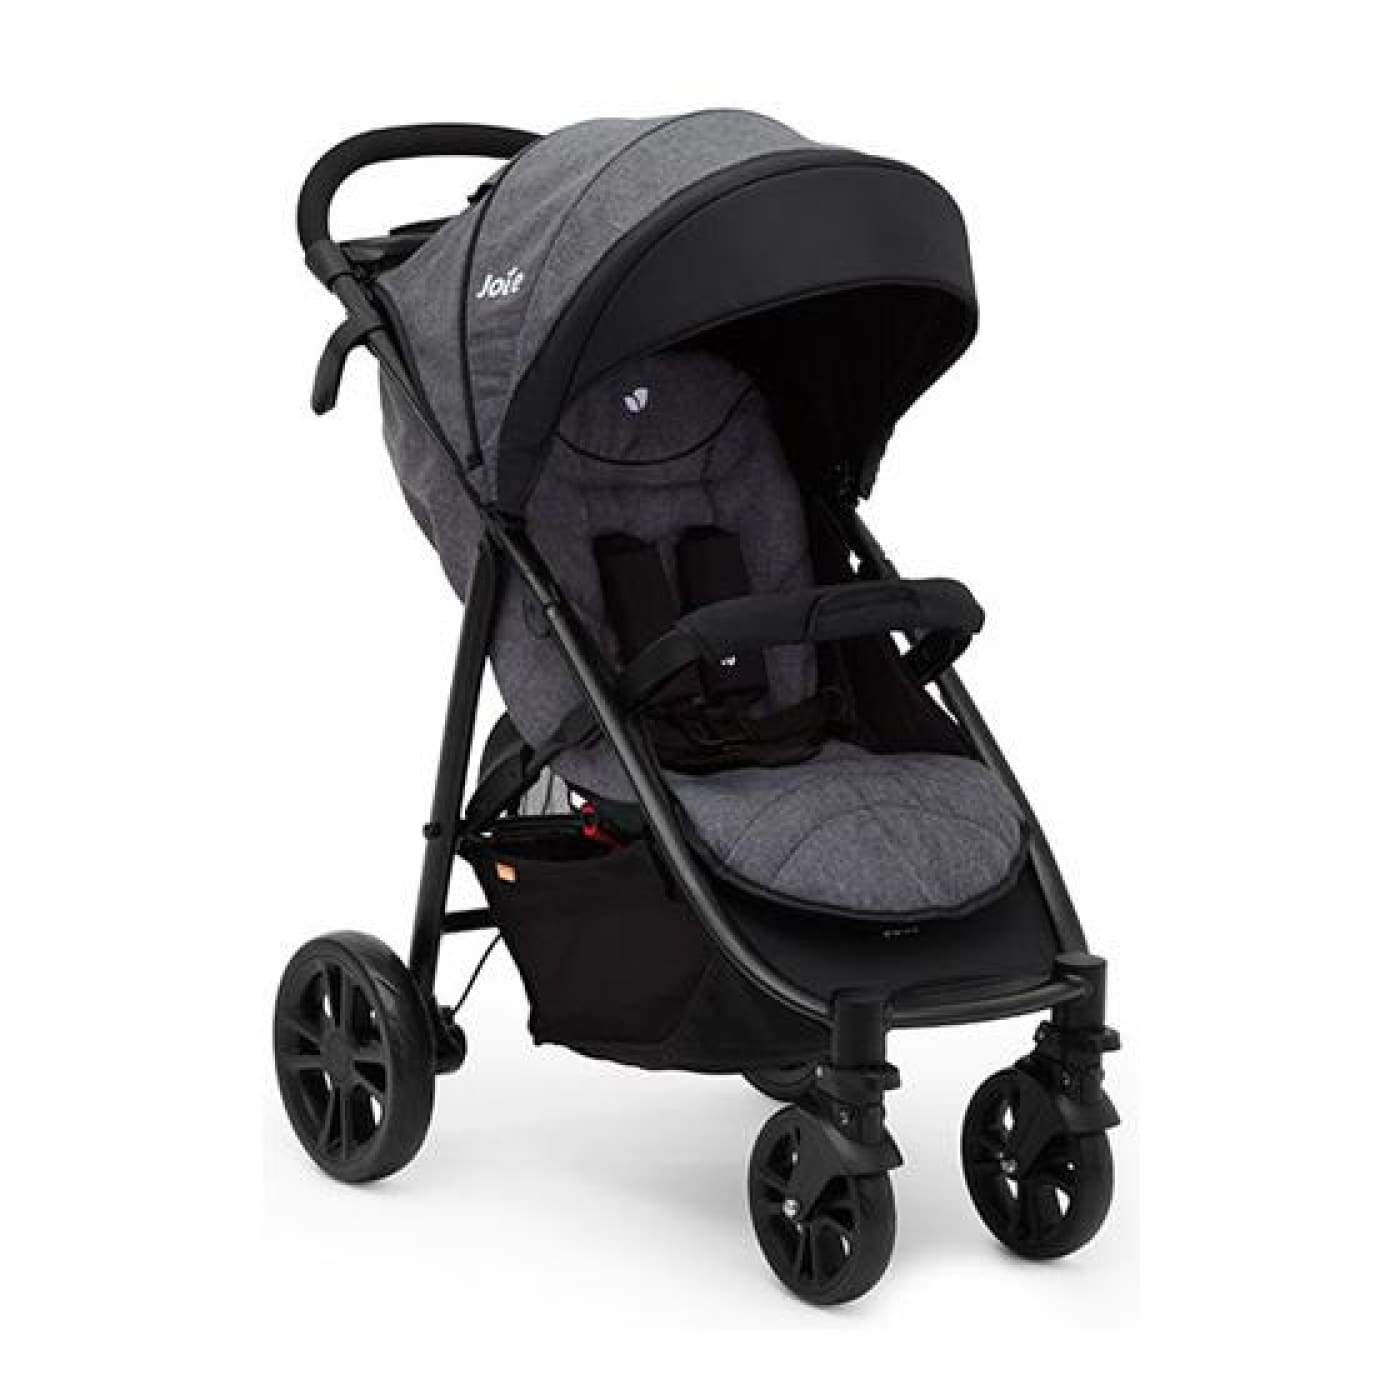 Joie Litetrax 4 Travel System - Chromium - (ETA March) - PRAMS & STROLLERS - 4 WHEEL TSC